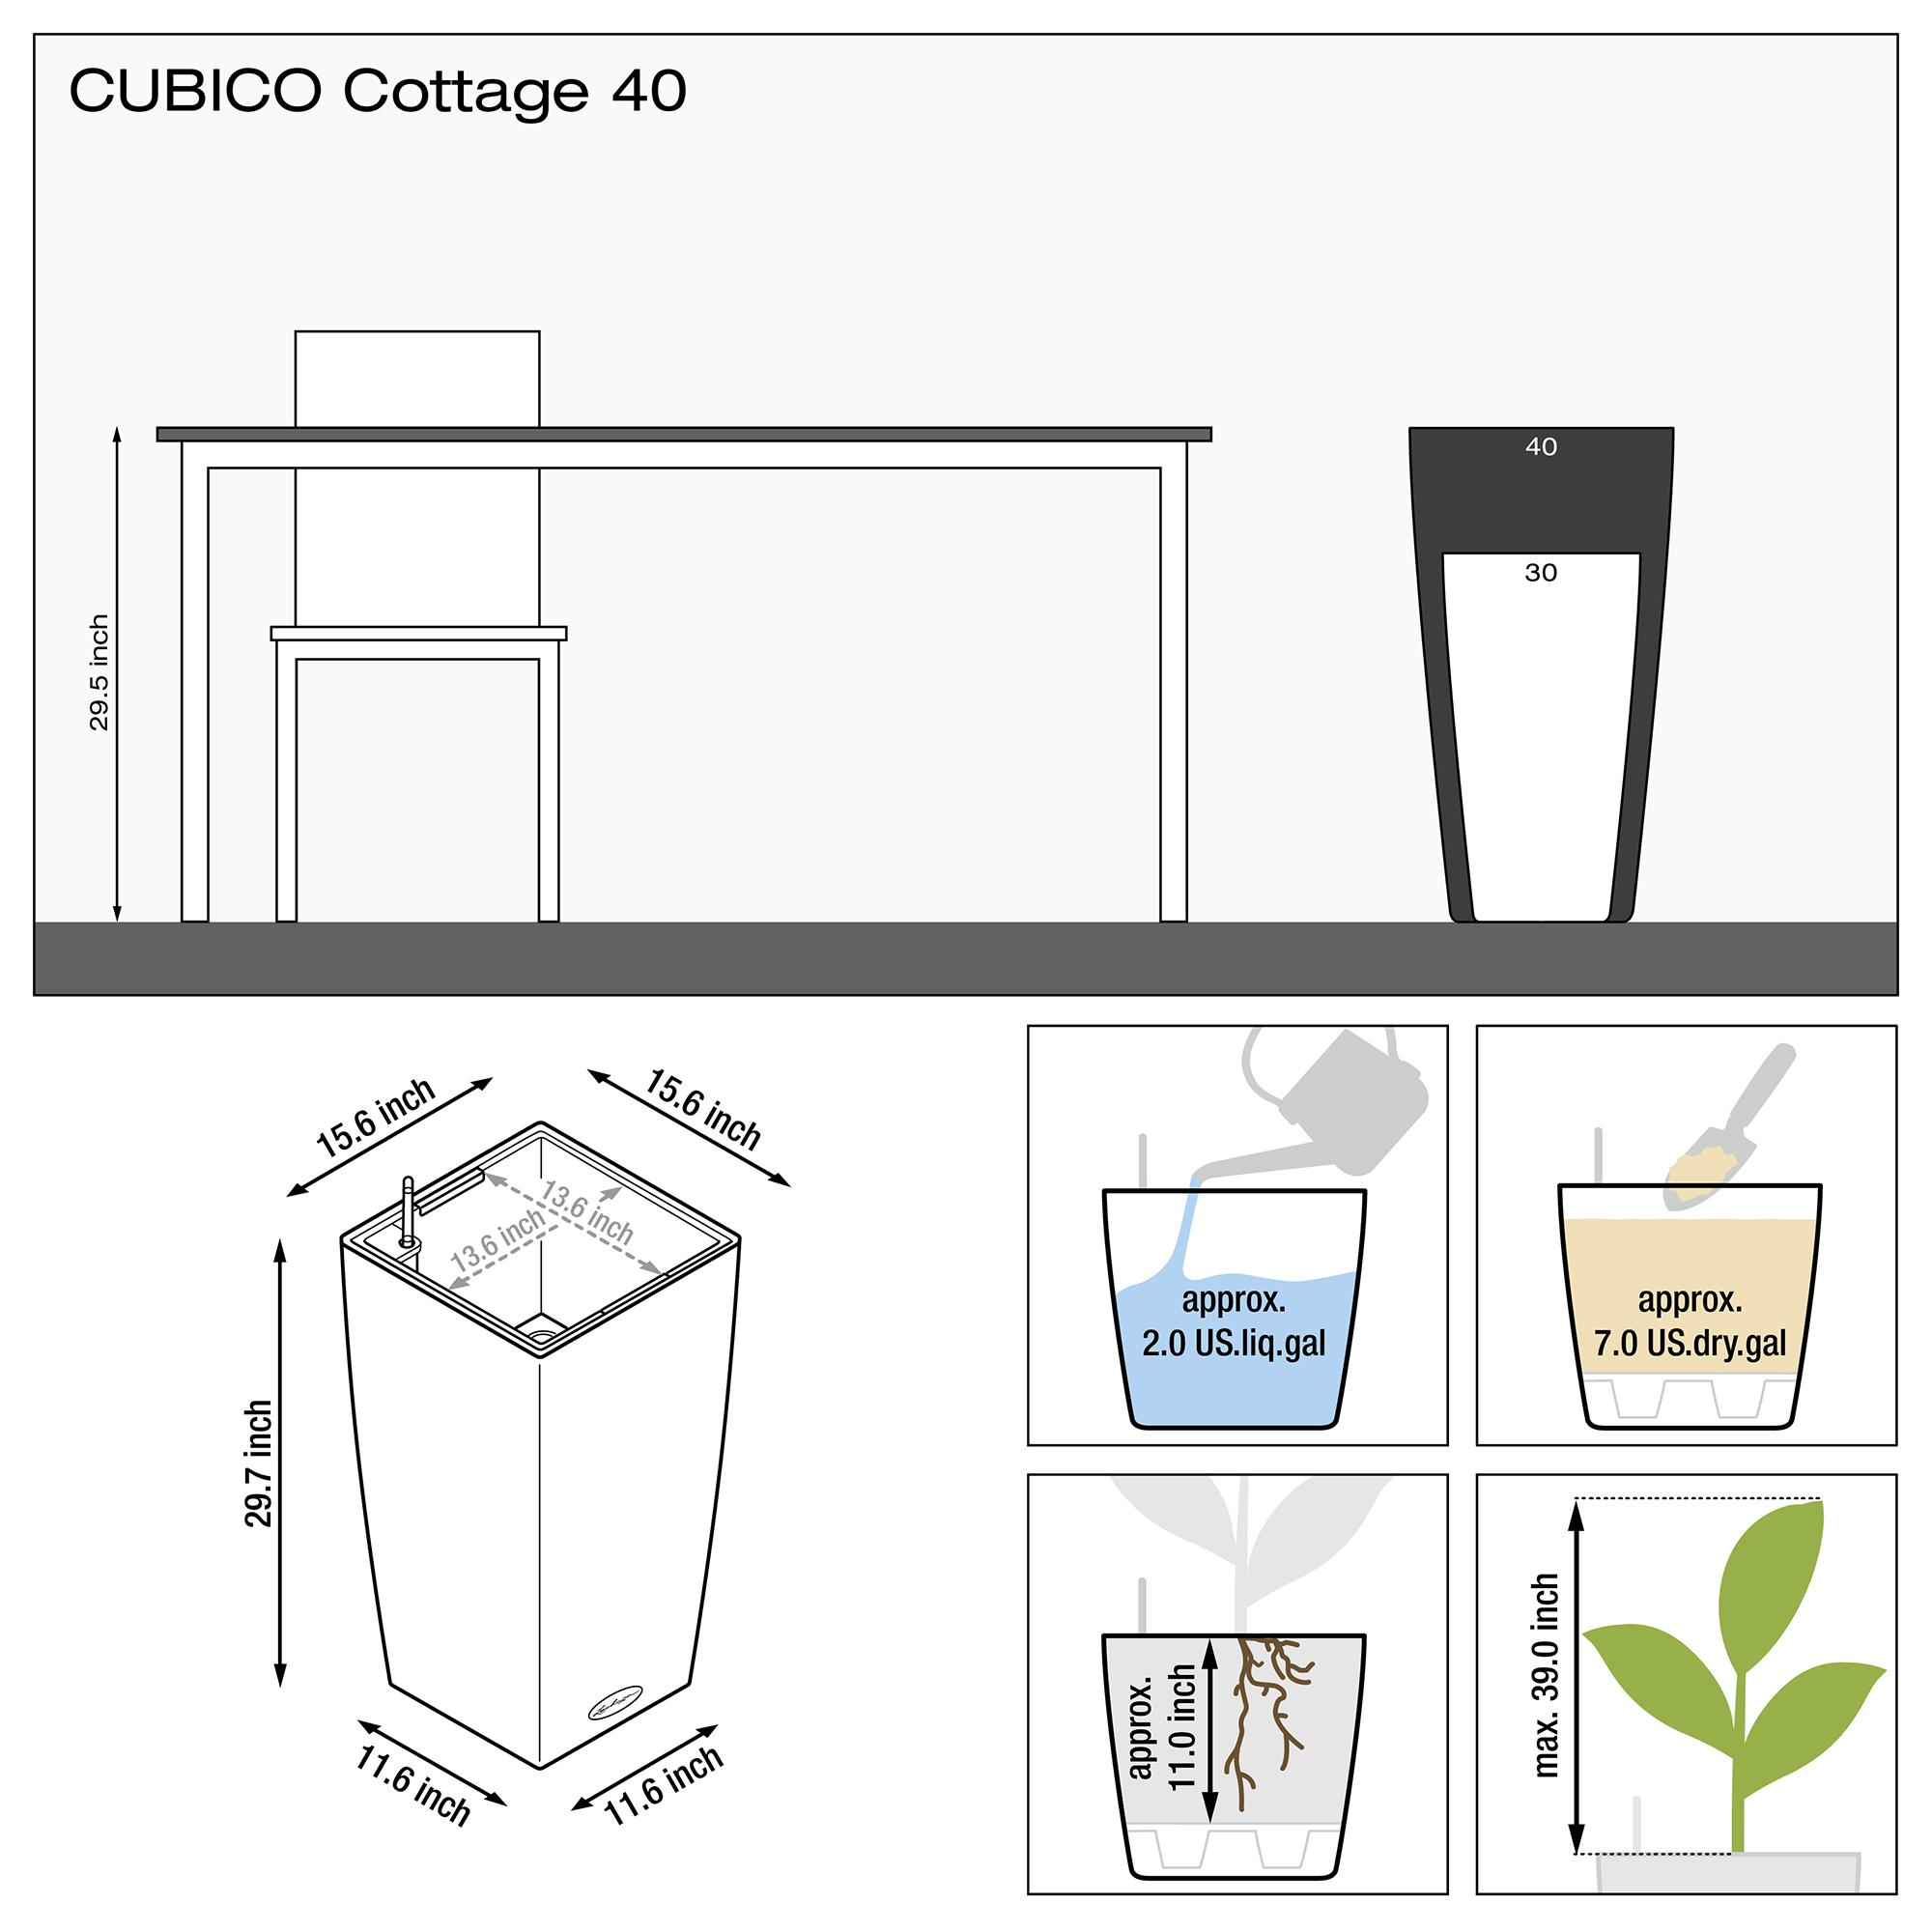 le_cubico-cottage40_product_addi_nz_us